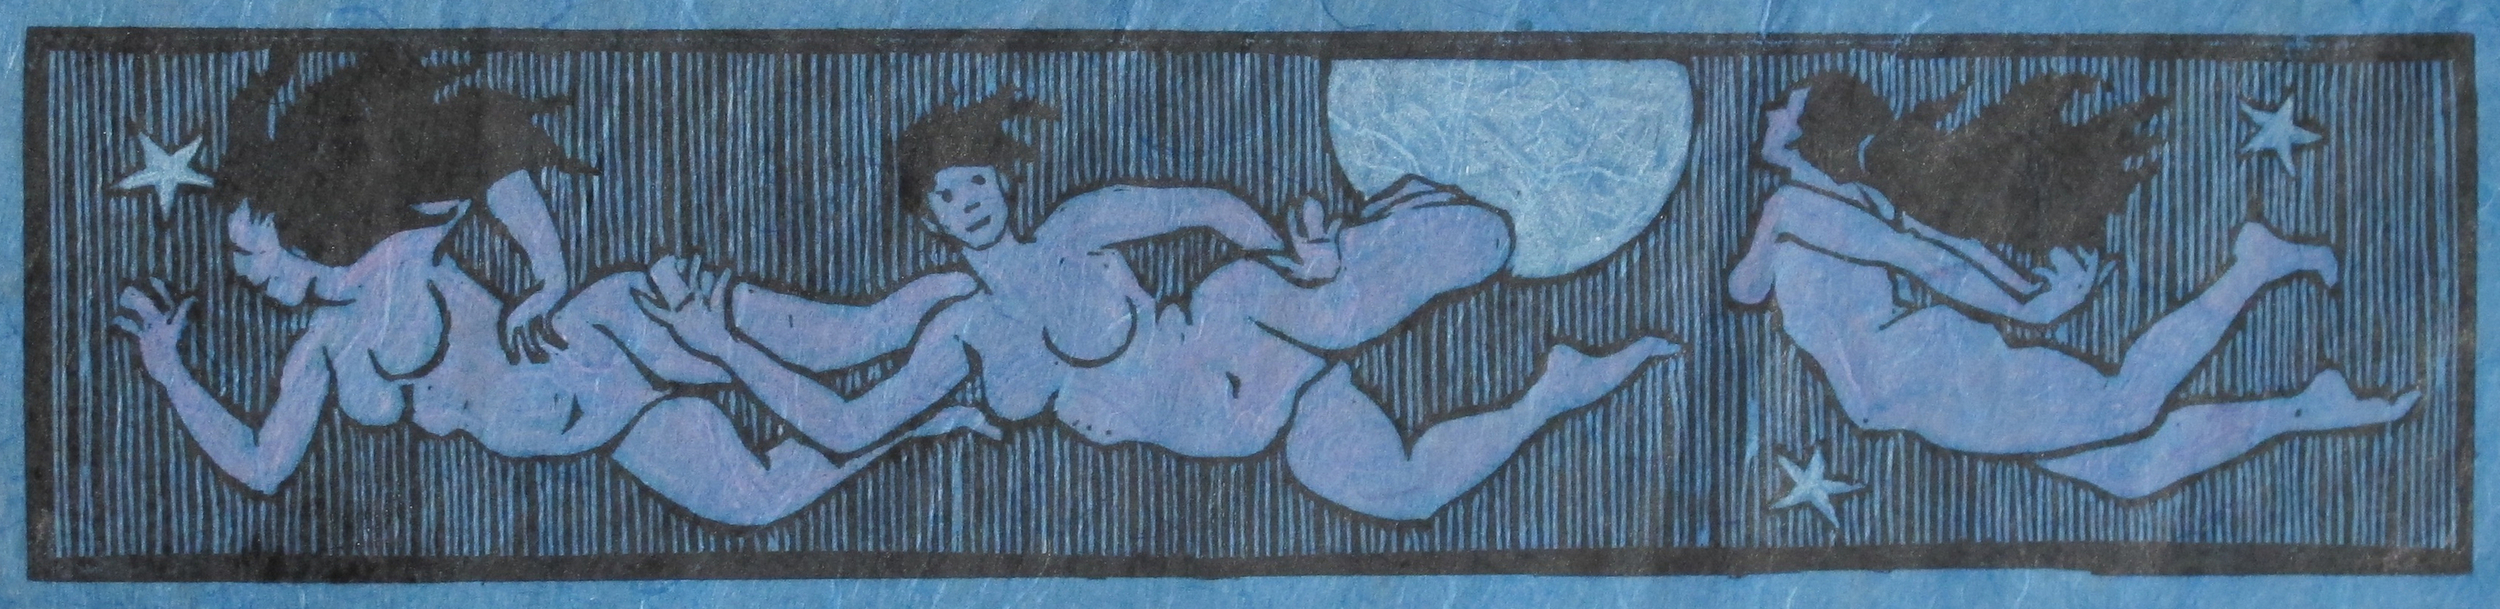 """""""Milky Way: The Nymphs Learn to Fly"""" Hand-Colored Edition of 20. Linoleum cut on Unryu paper. 3 x 13 inches. $120 each."""